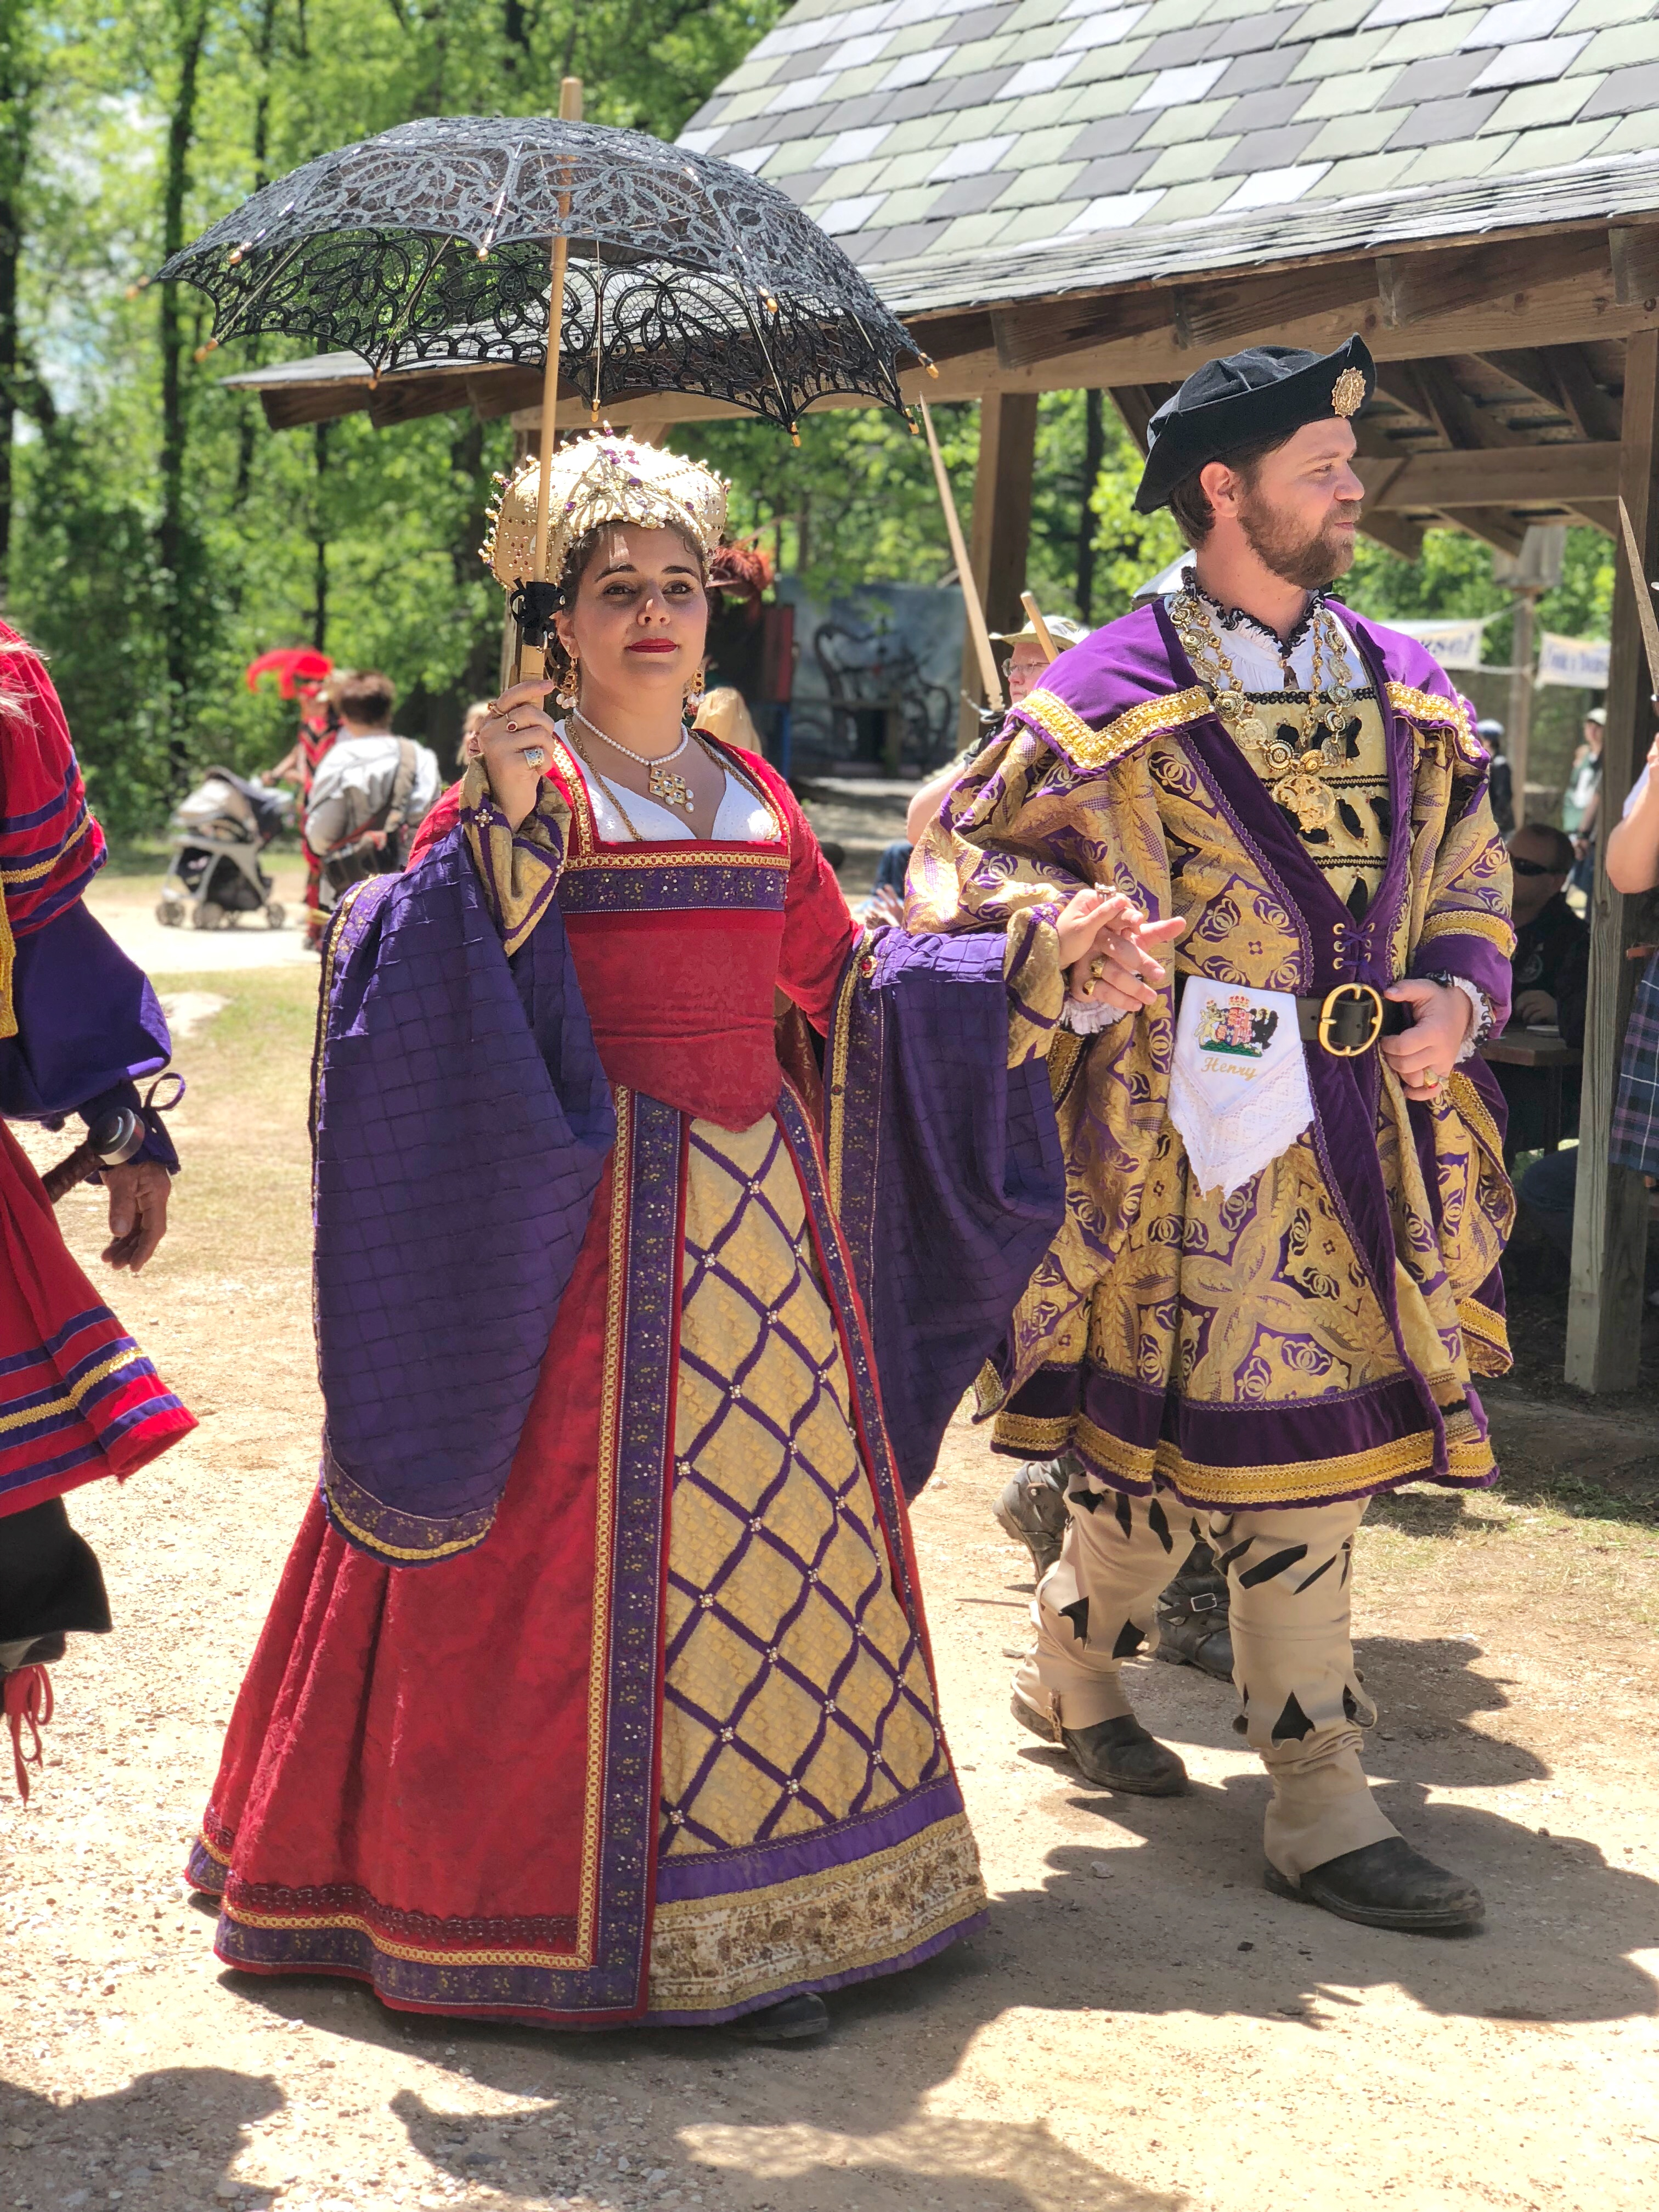 King and Queen of Scarborough Fair